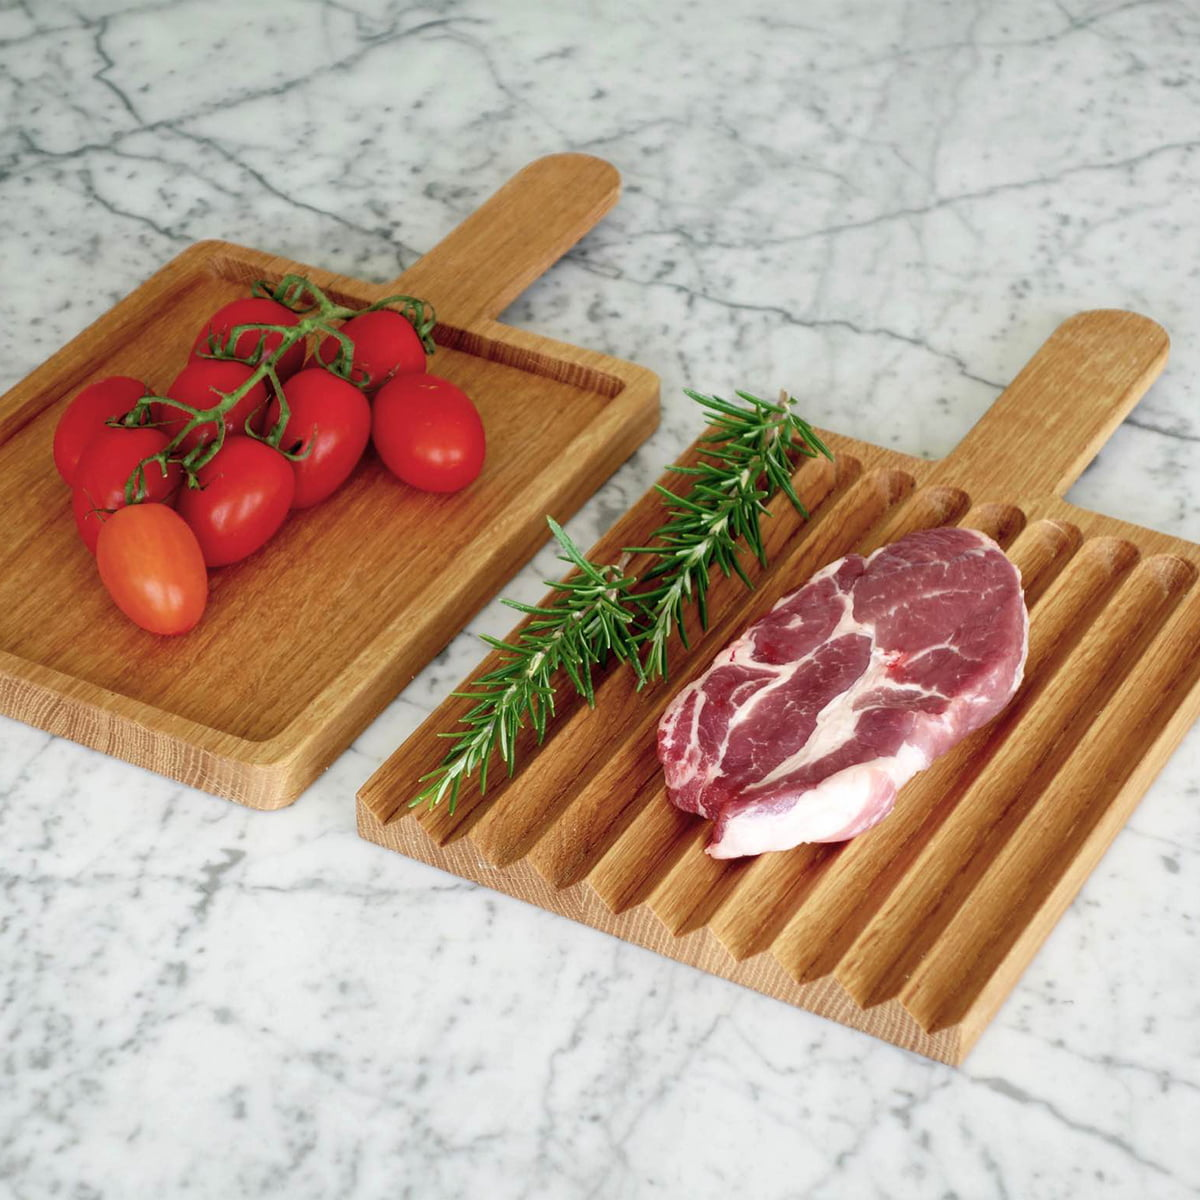 Cutting Board With Meat